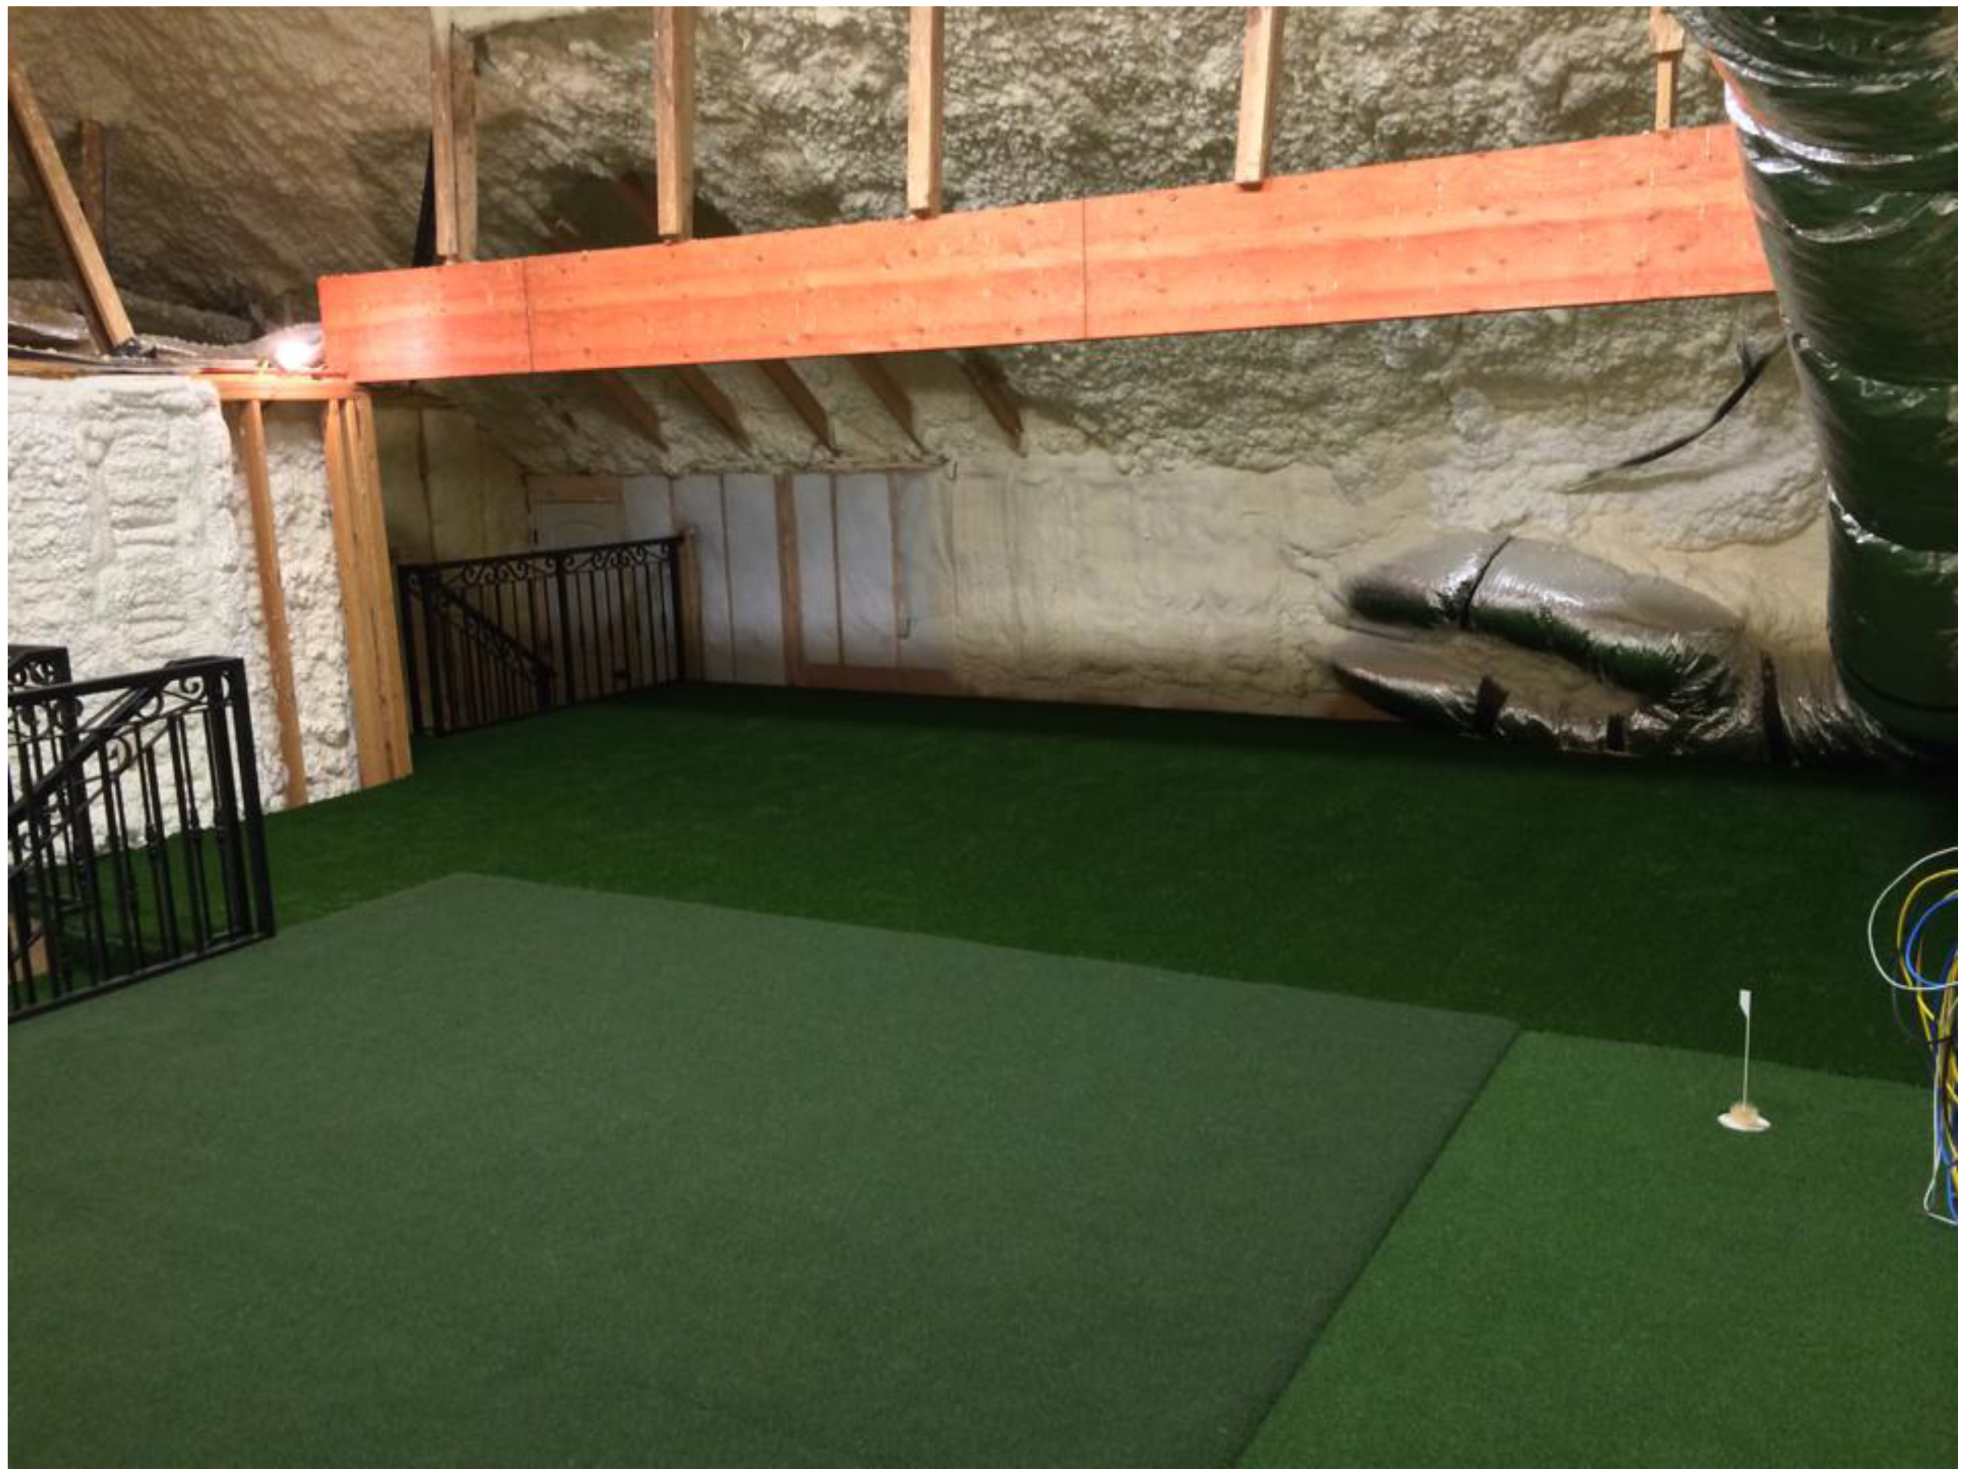 Man Cave Norman Ok : Artificial turf for sport fan caves or man caves! nexgen lawns